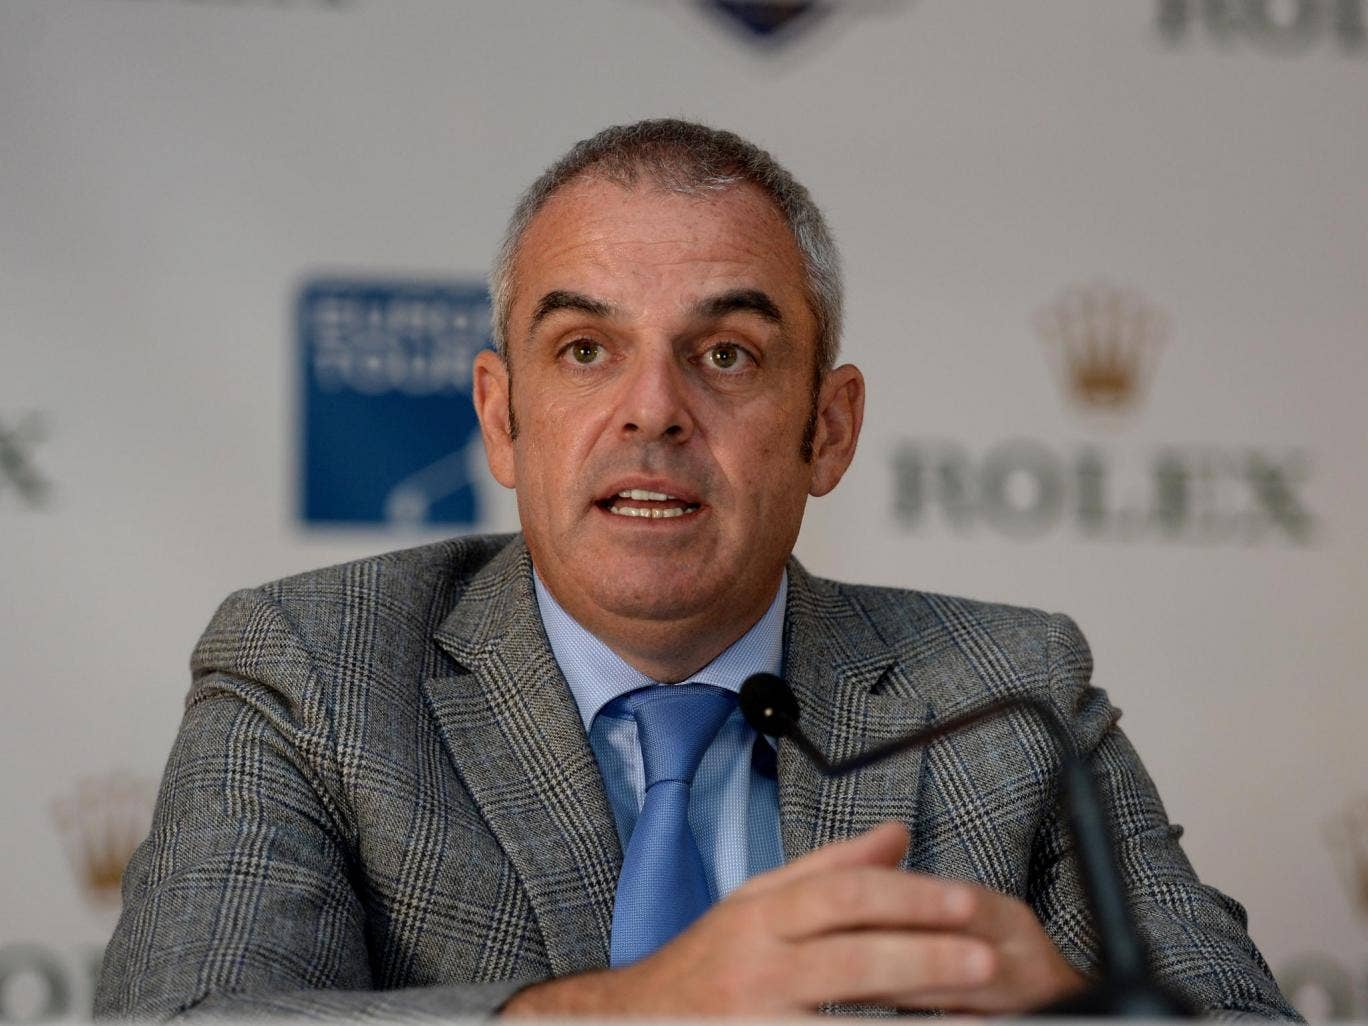 Europe Ryder Cup captain Paul McGinley has appointed Sam Torrence and Des Smyth as two of his four vice-captains